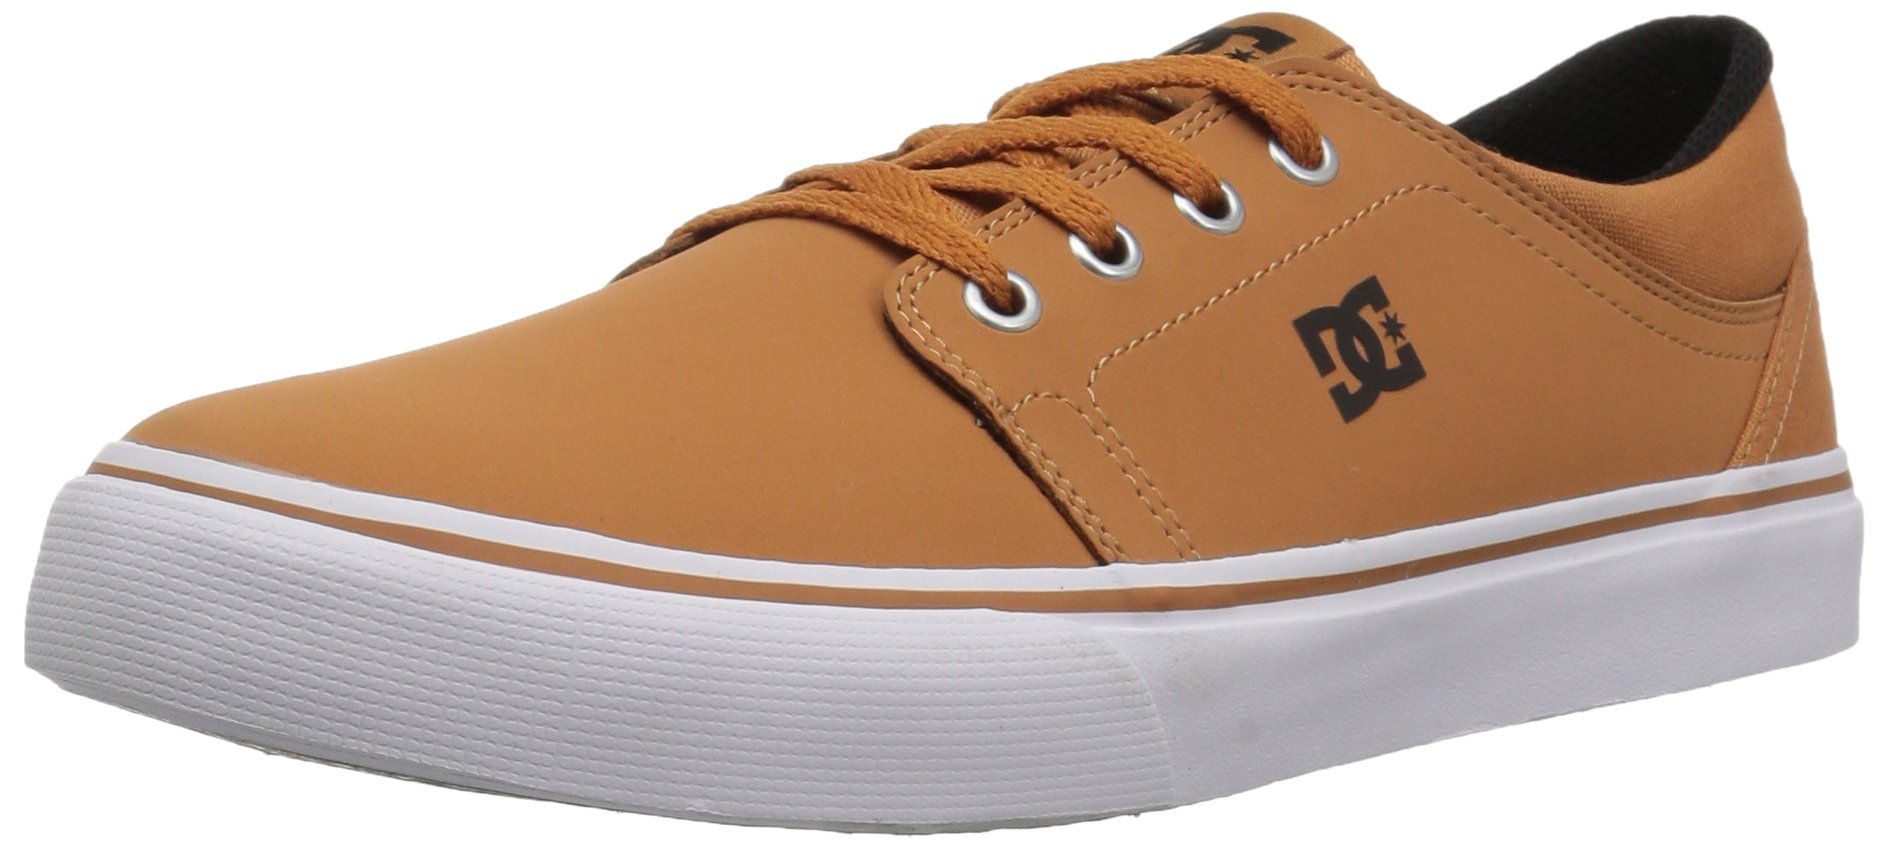 DC Boys' Trase, Wheat, 5 M US Big Kid by DC